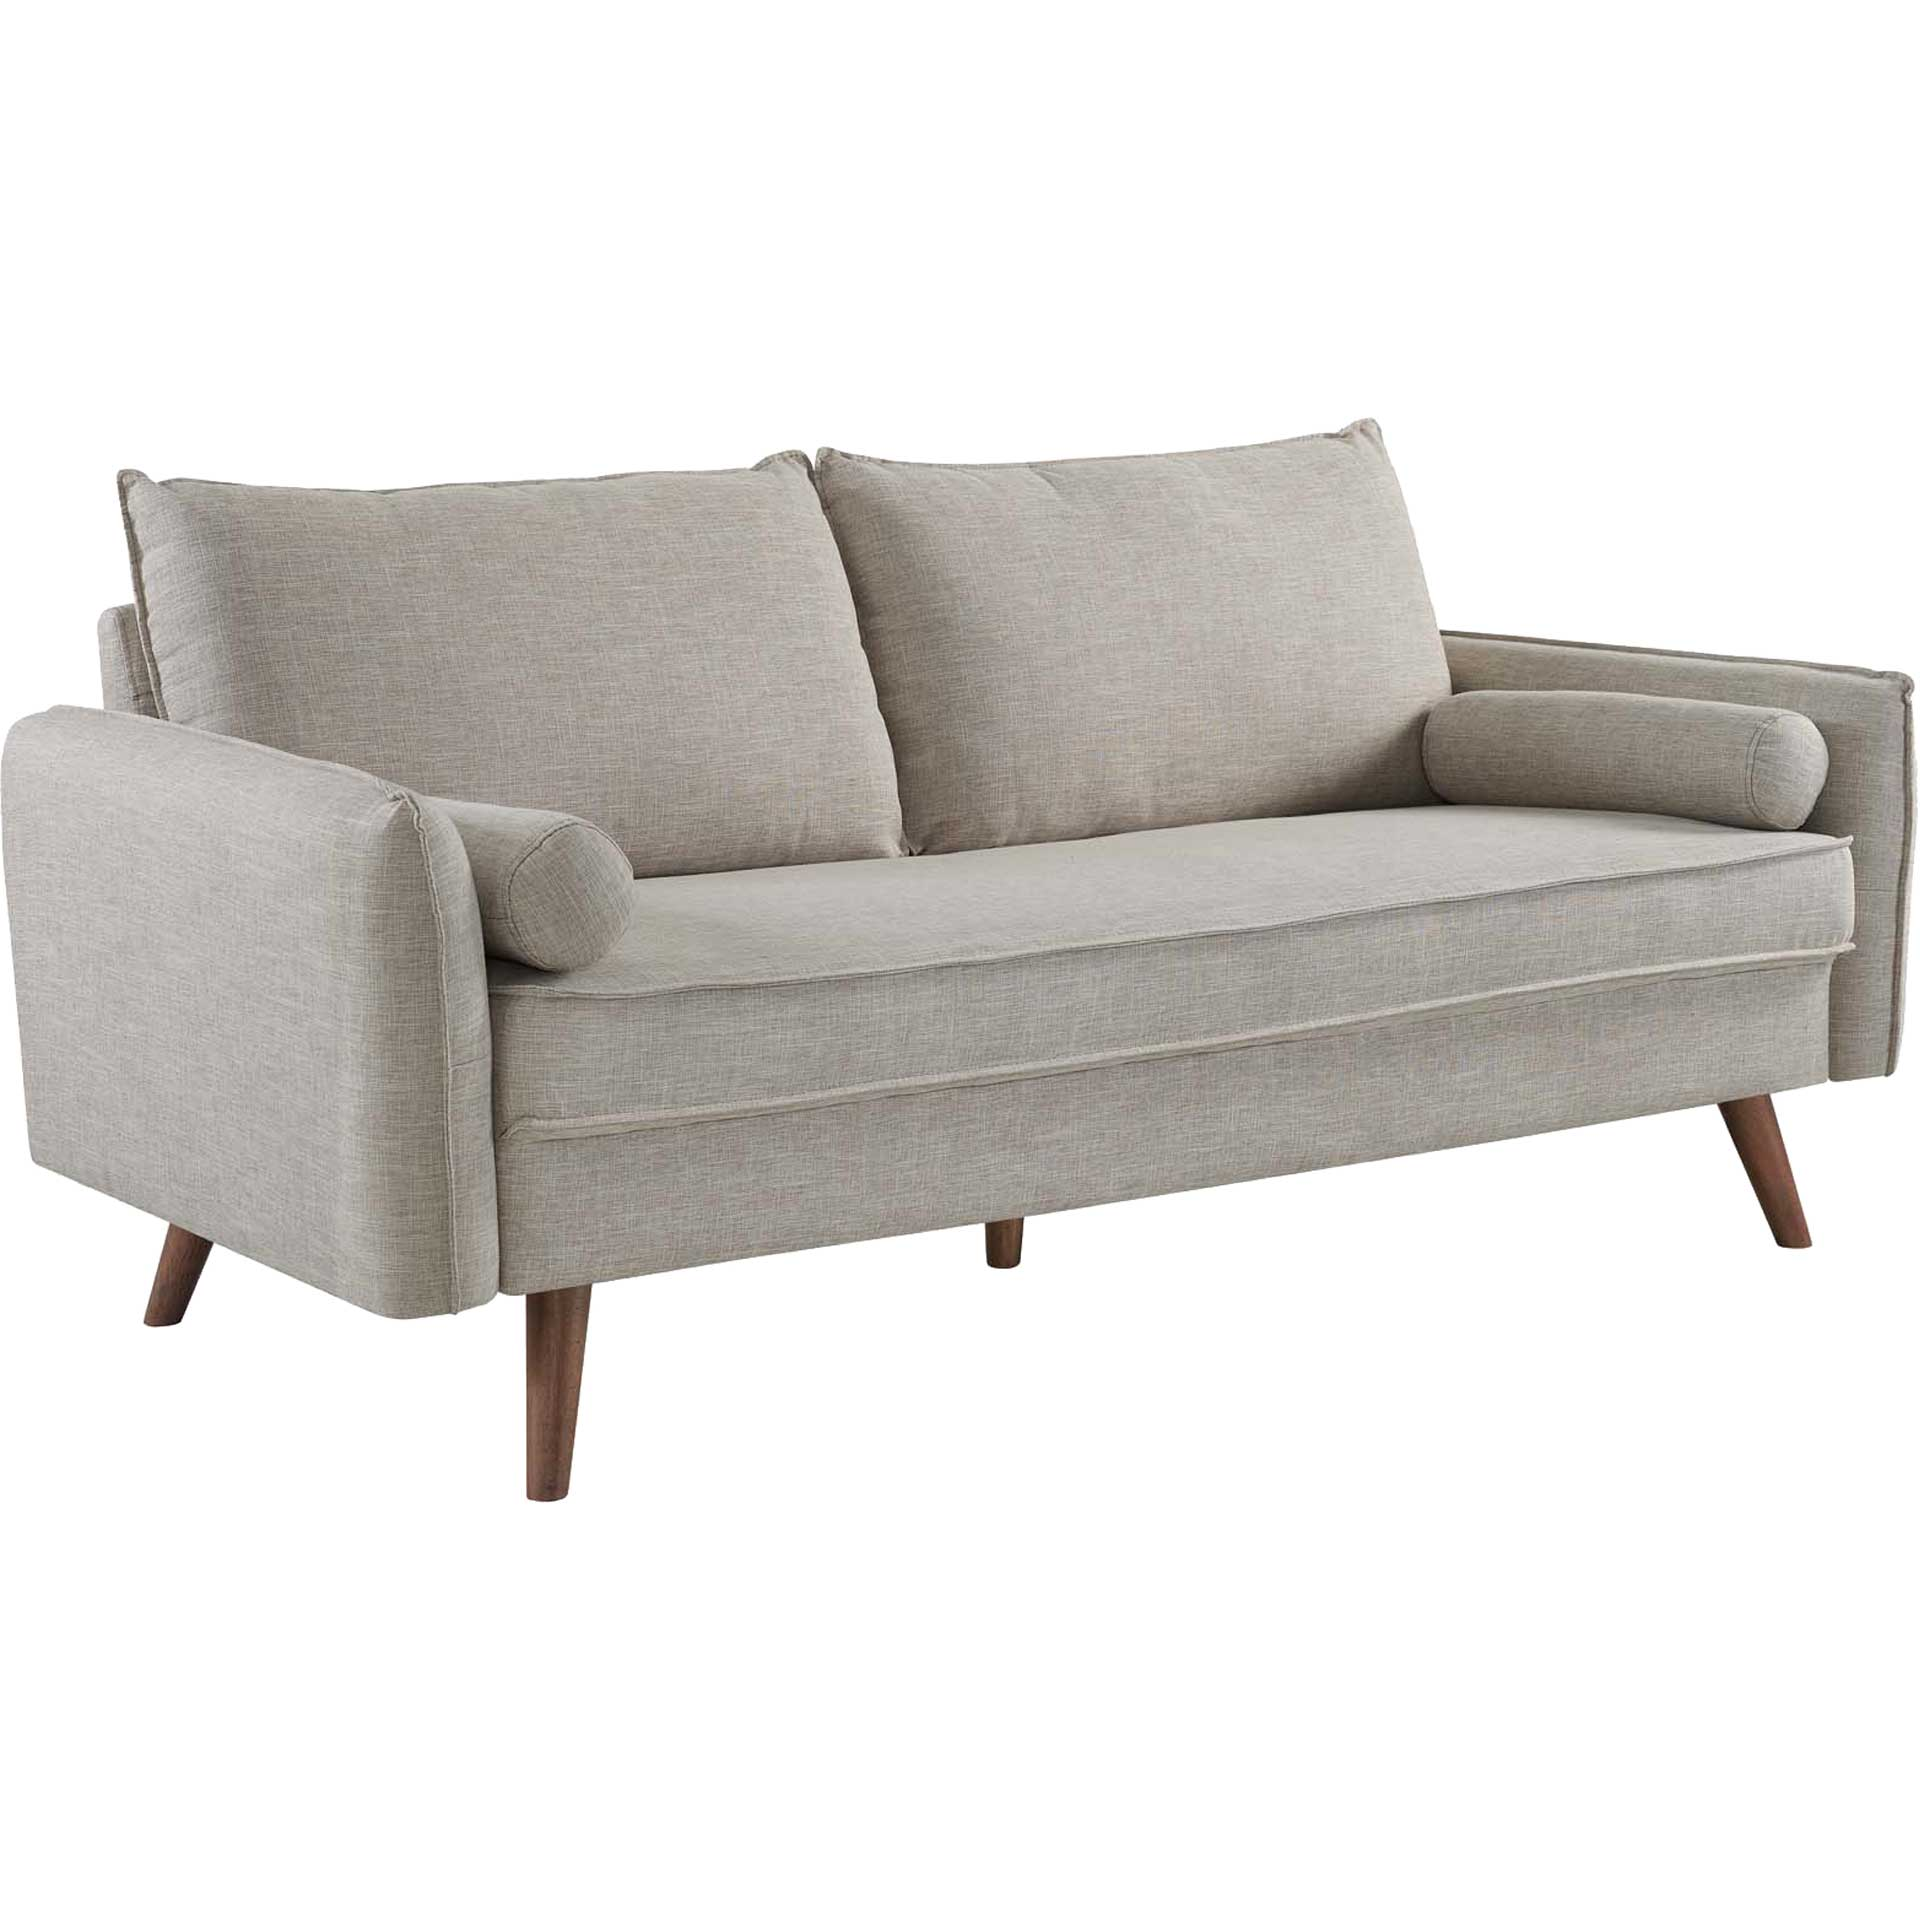 Raylee Upholstered Fabric Sofa Beige